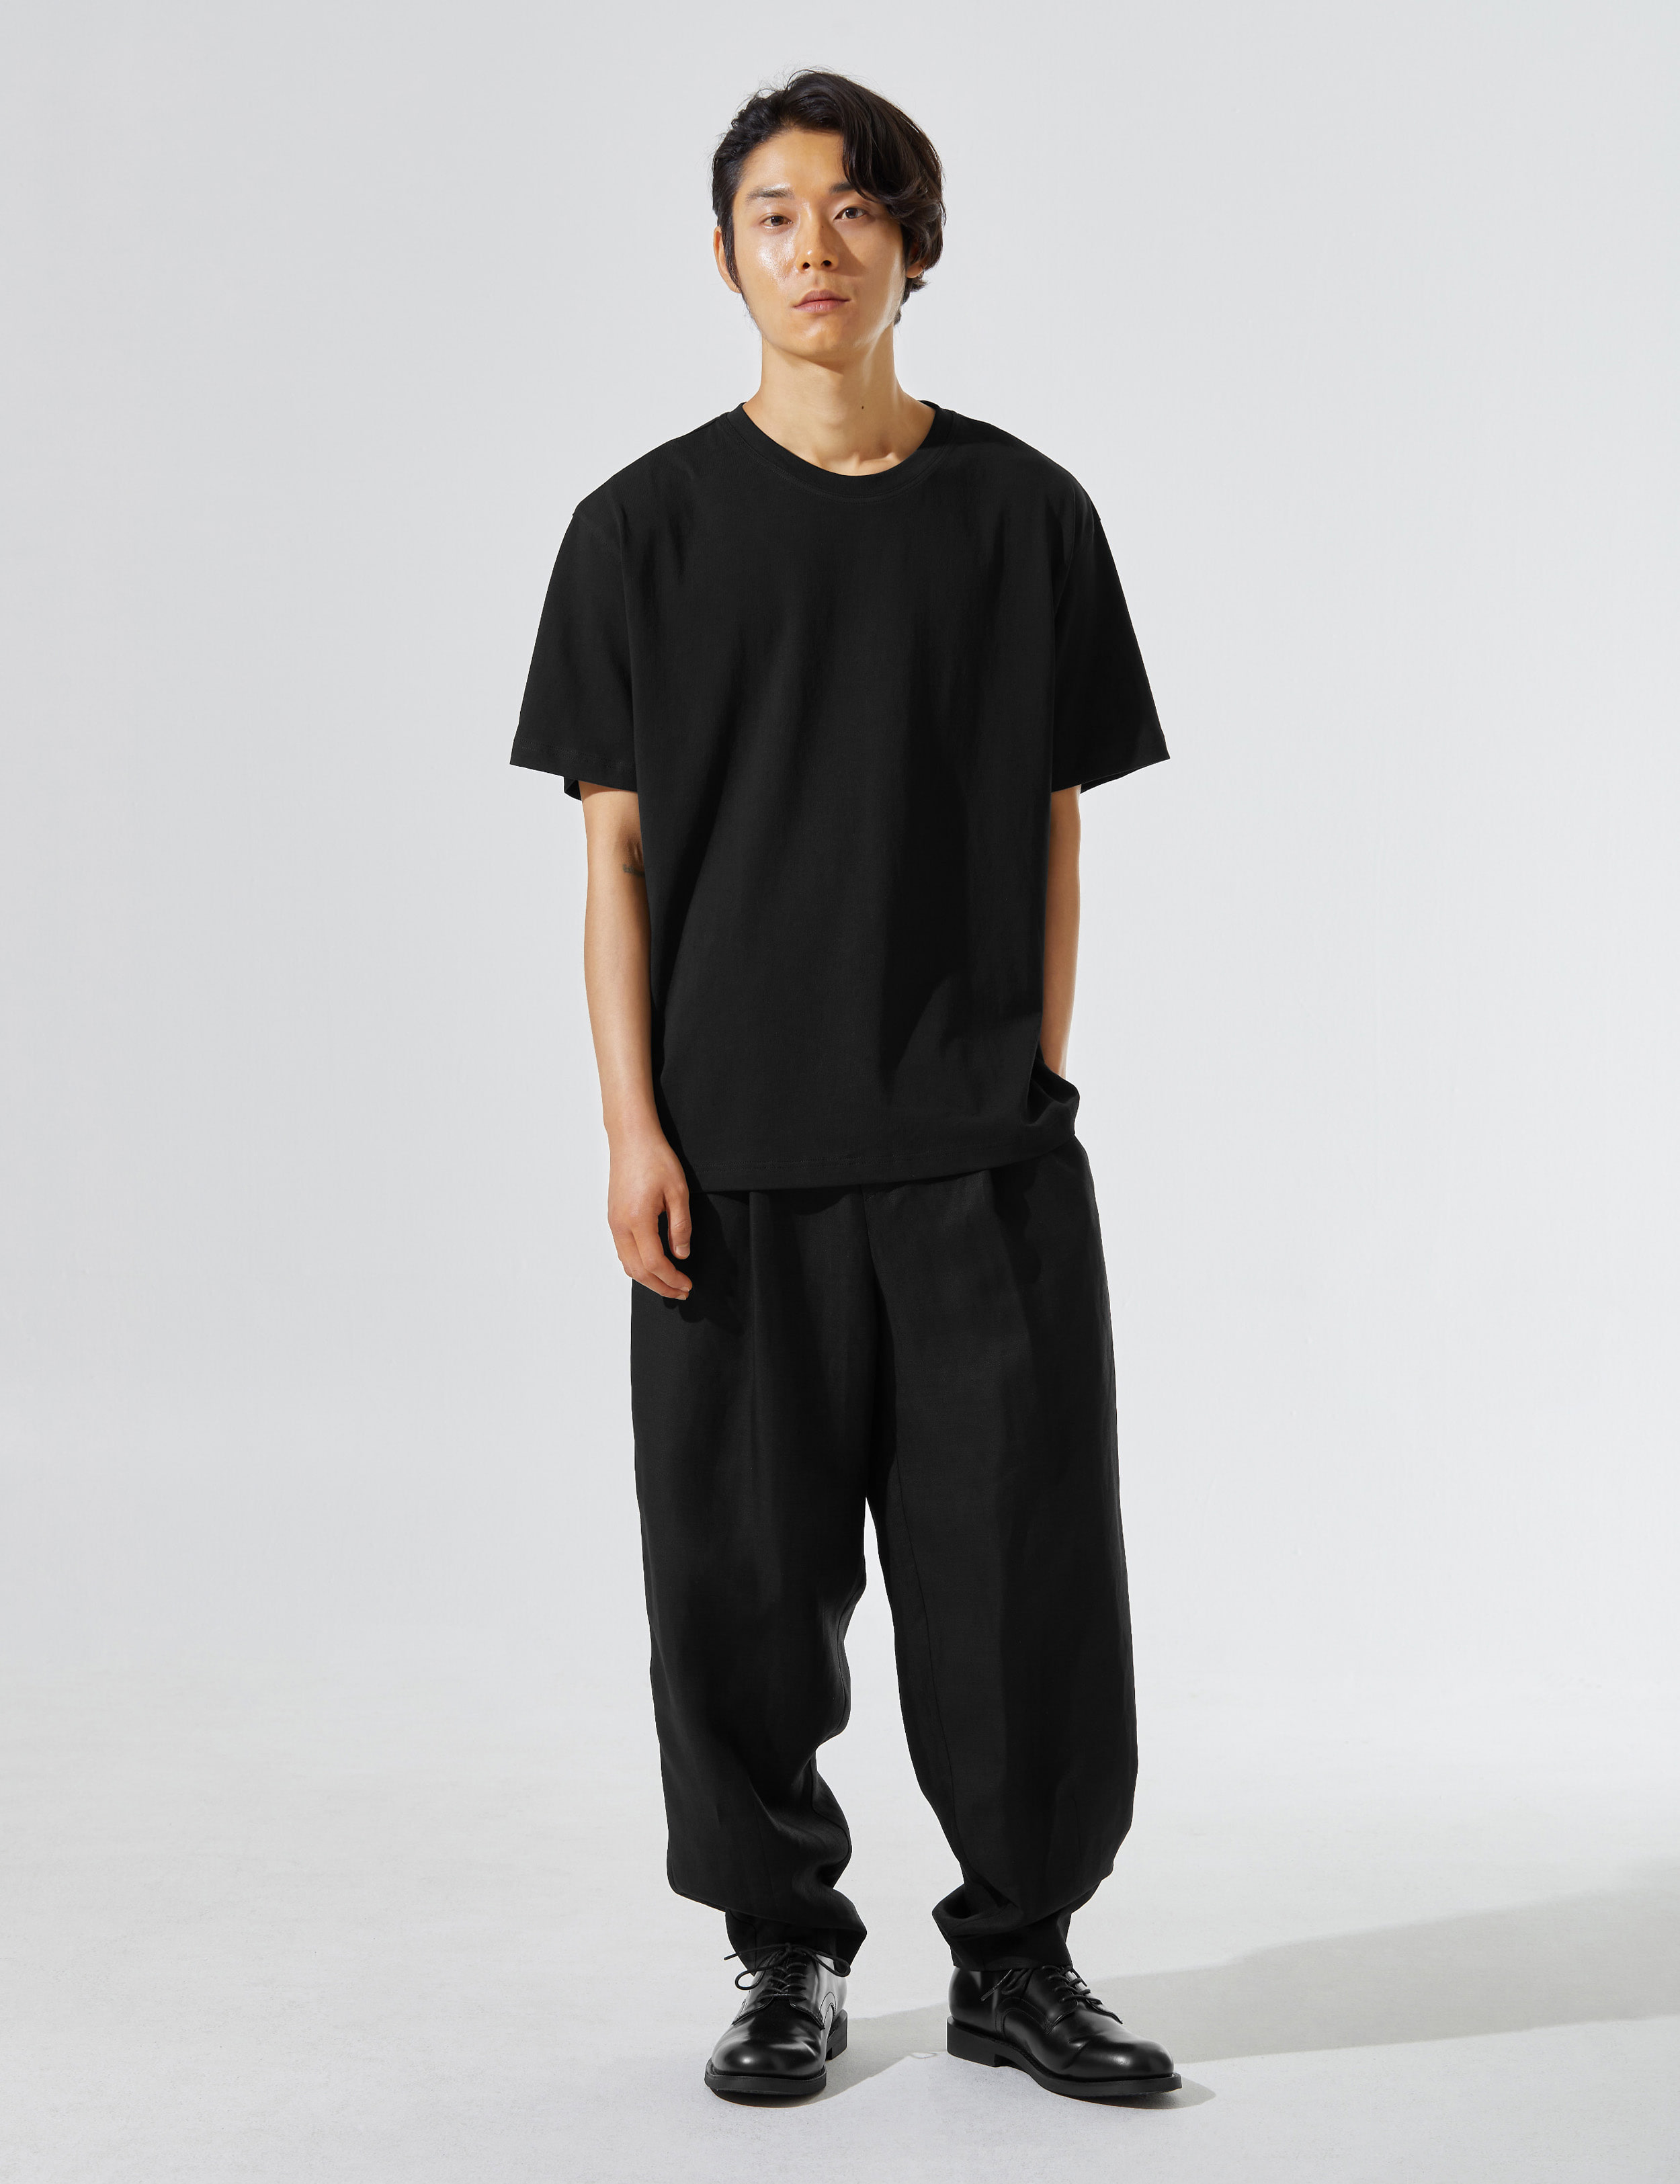 N.7 Waist wide pants Black